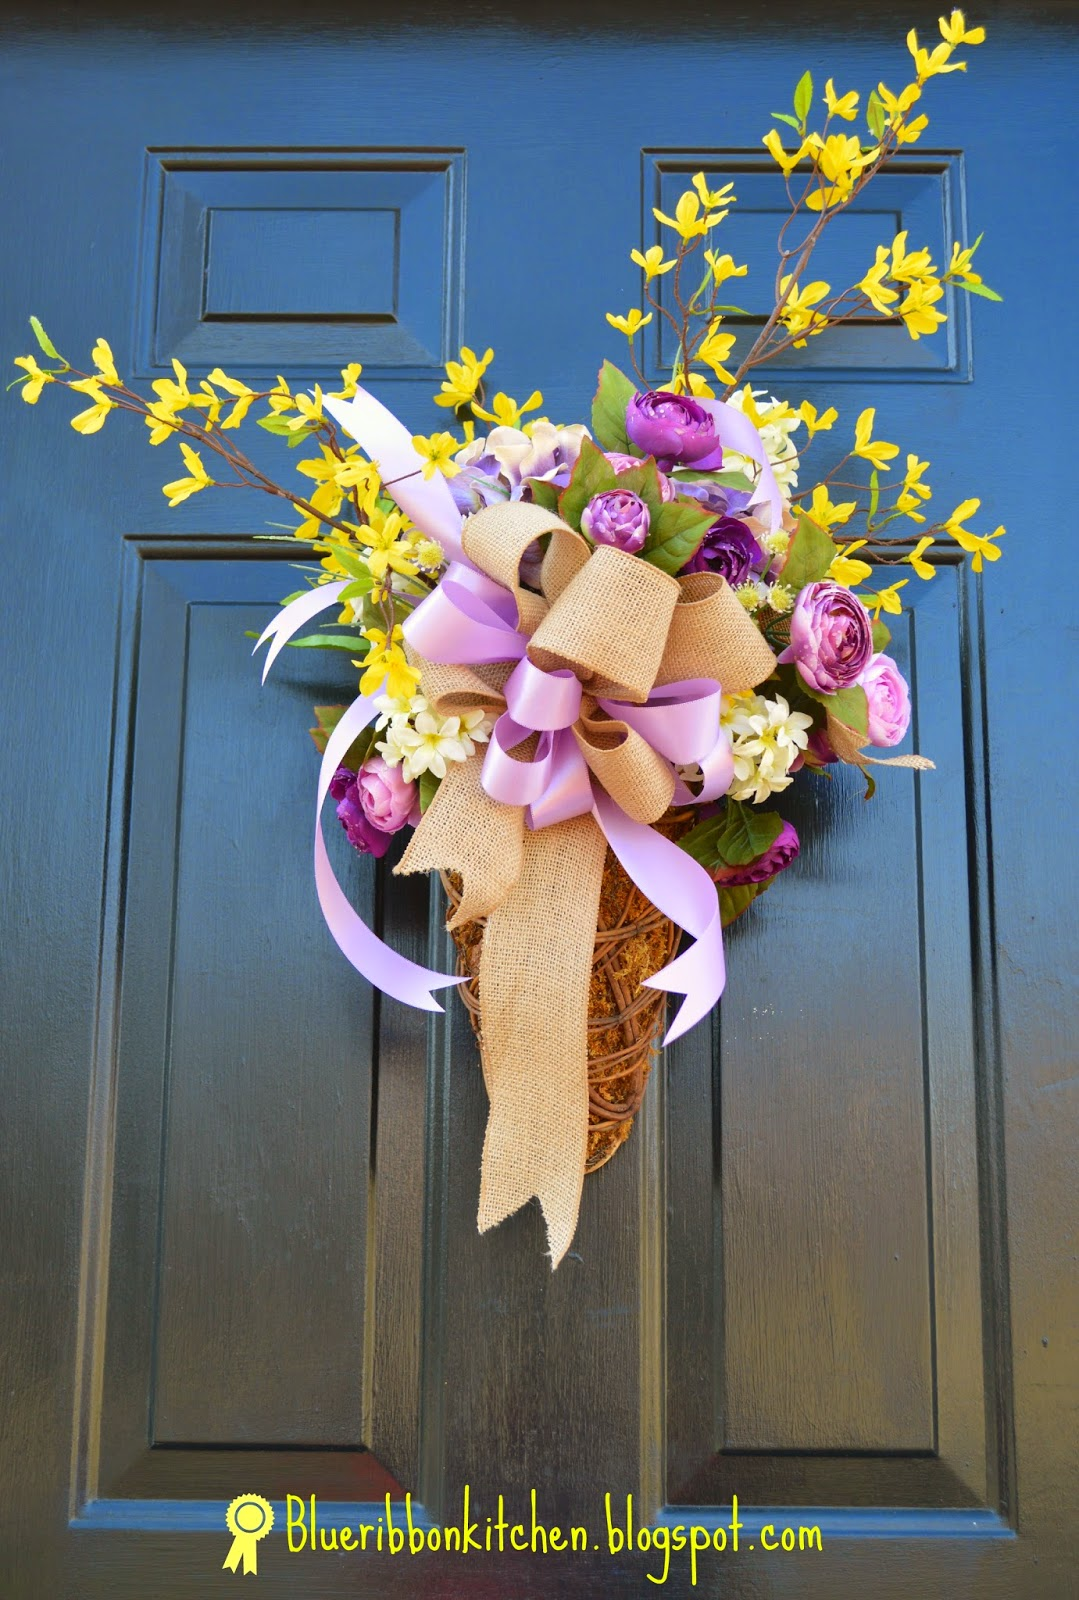 I Used A Door Basket With Chicken Wire, Green Moss Yellow Forsythia  Branches (those Forsythia Are So Spring Y To Me) Contrasted With Purple And  Pink ...